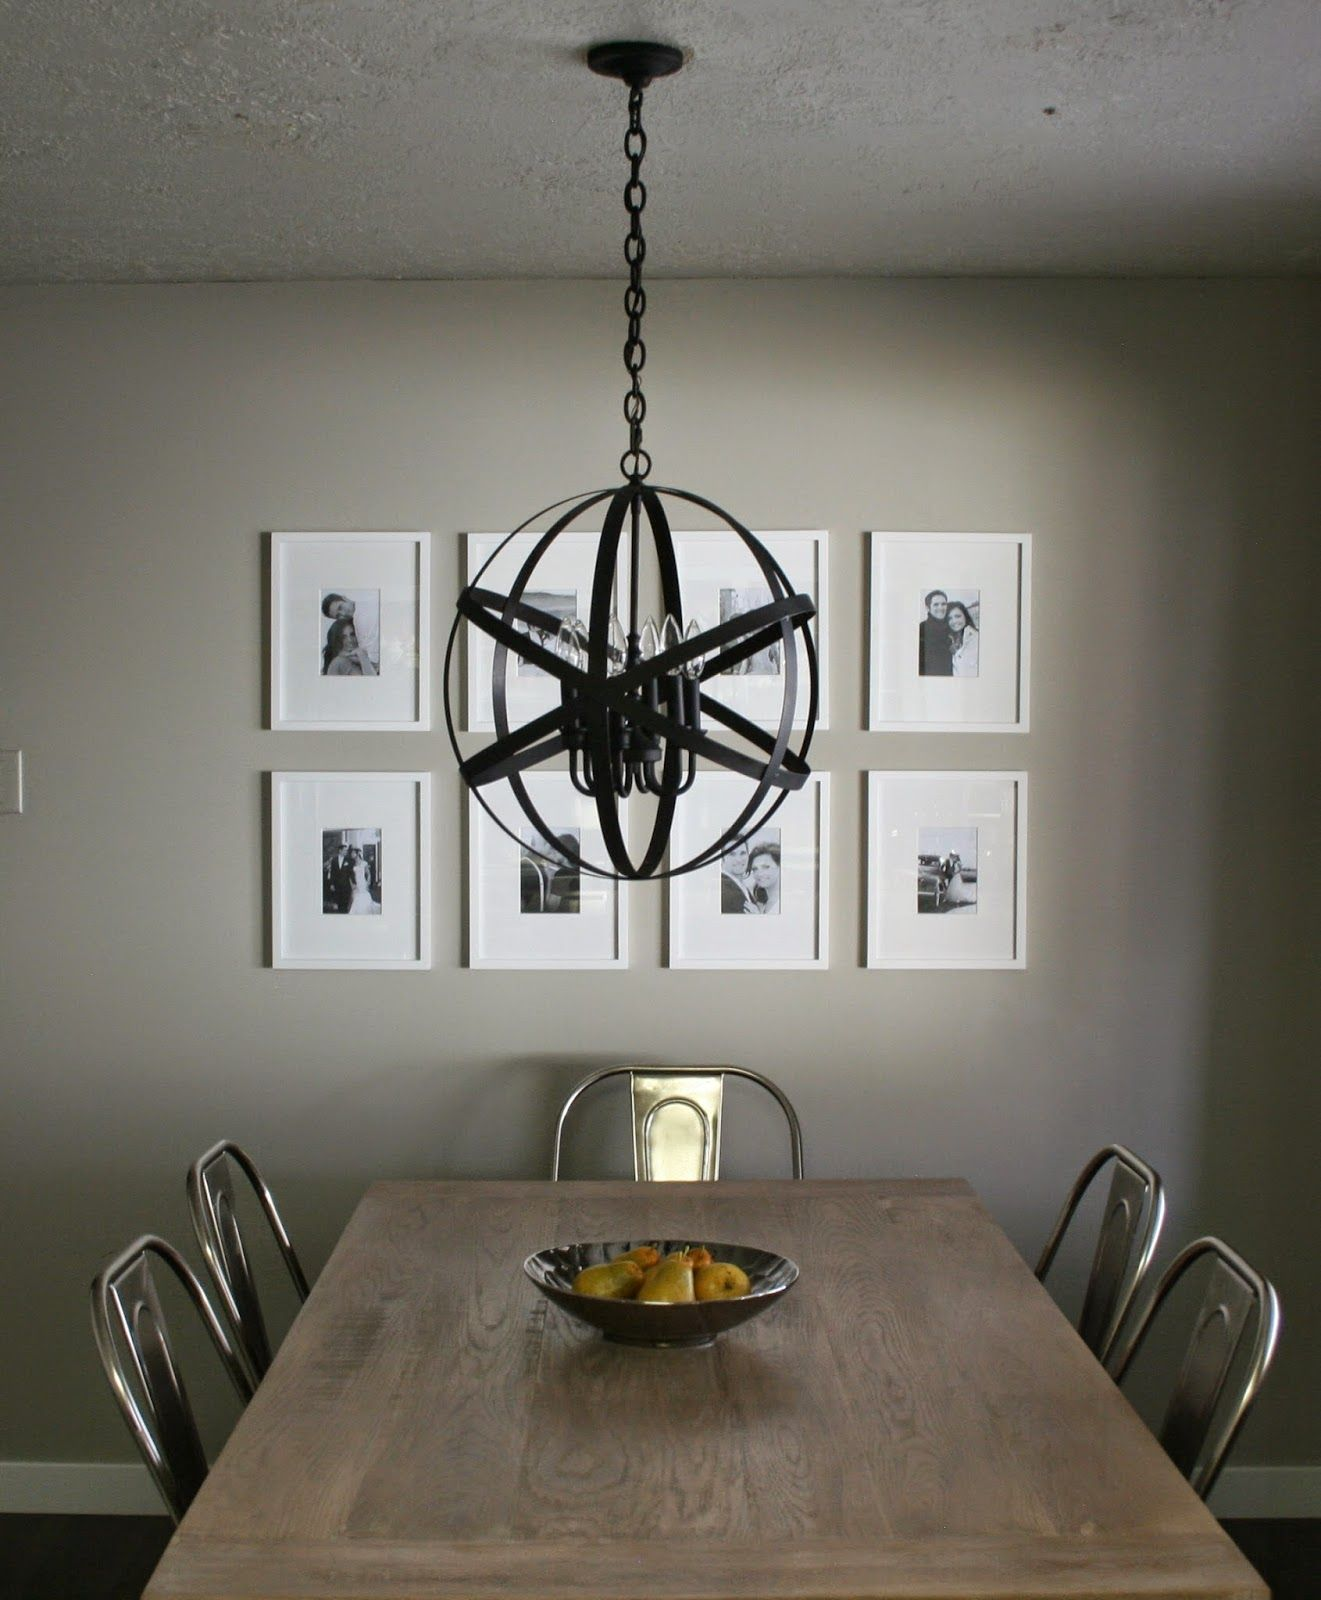 ANDREA WEST DESIGN BLOG: DIY Designer Black Orb Chandelier